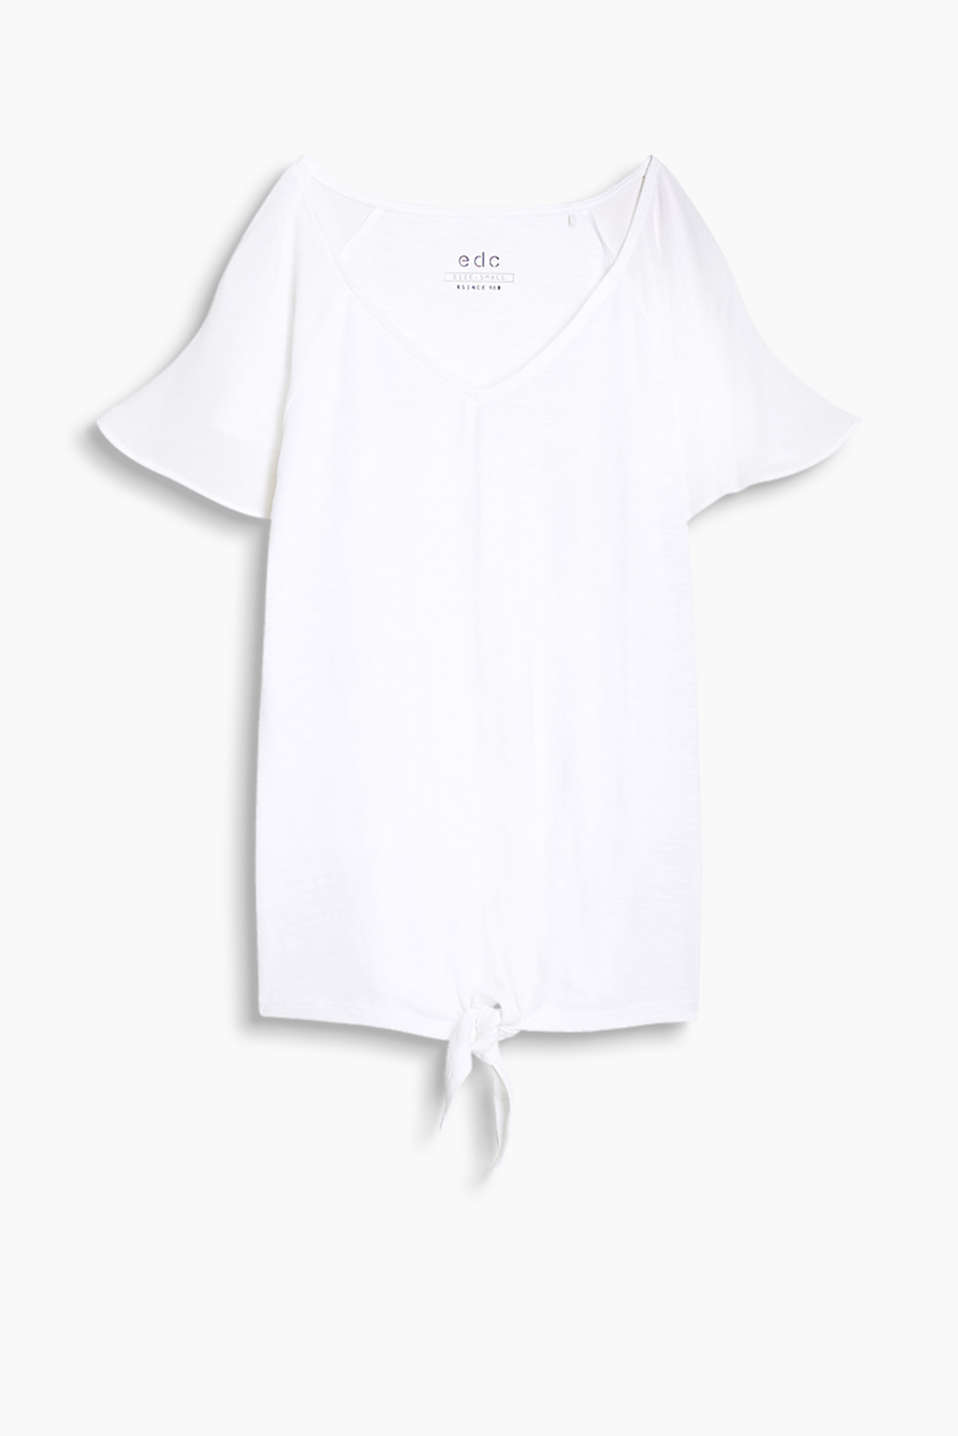 Feminine T-shirt with a knotted hem and raglan sleeves made of crêpe fabric